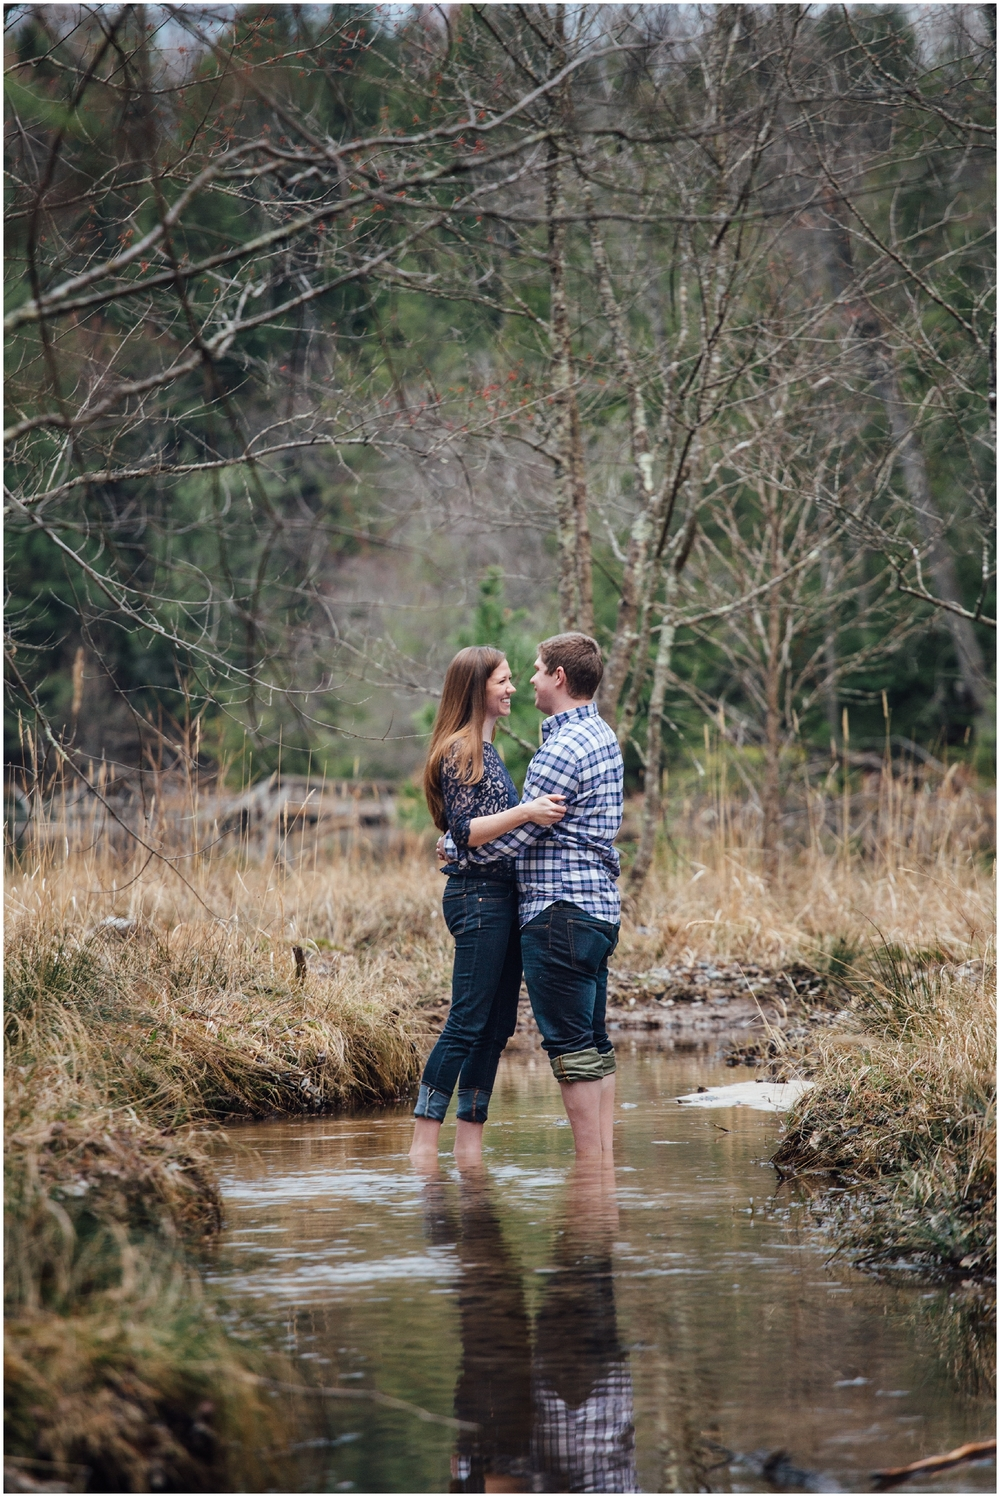 bays-mountain-park-engagement-kingsport-tennessee-jeep-wrangler-sahara-katy-sergent-photography-wedding-photographer_0021.jpeg